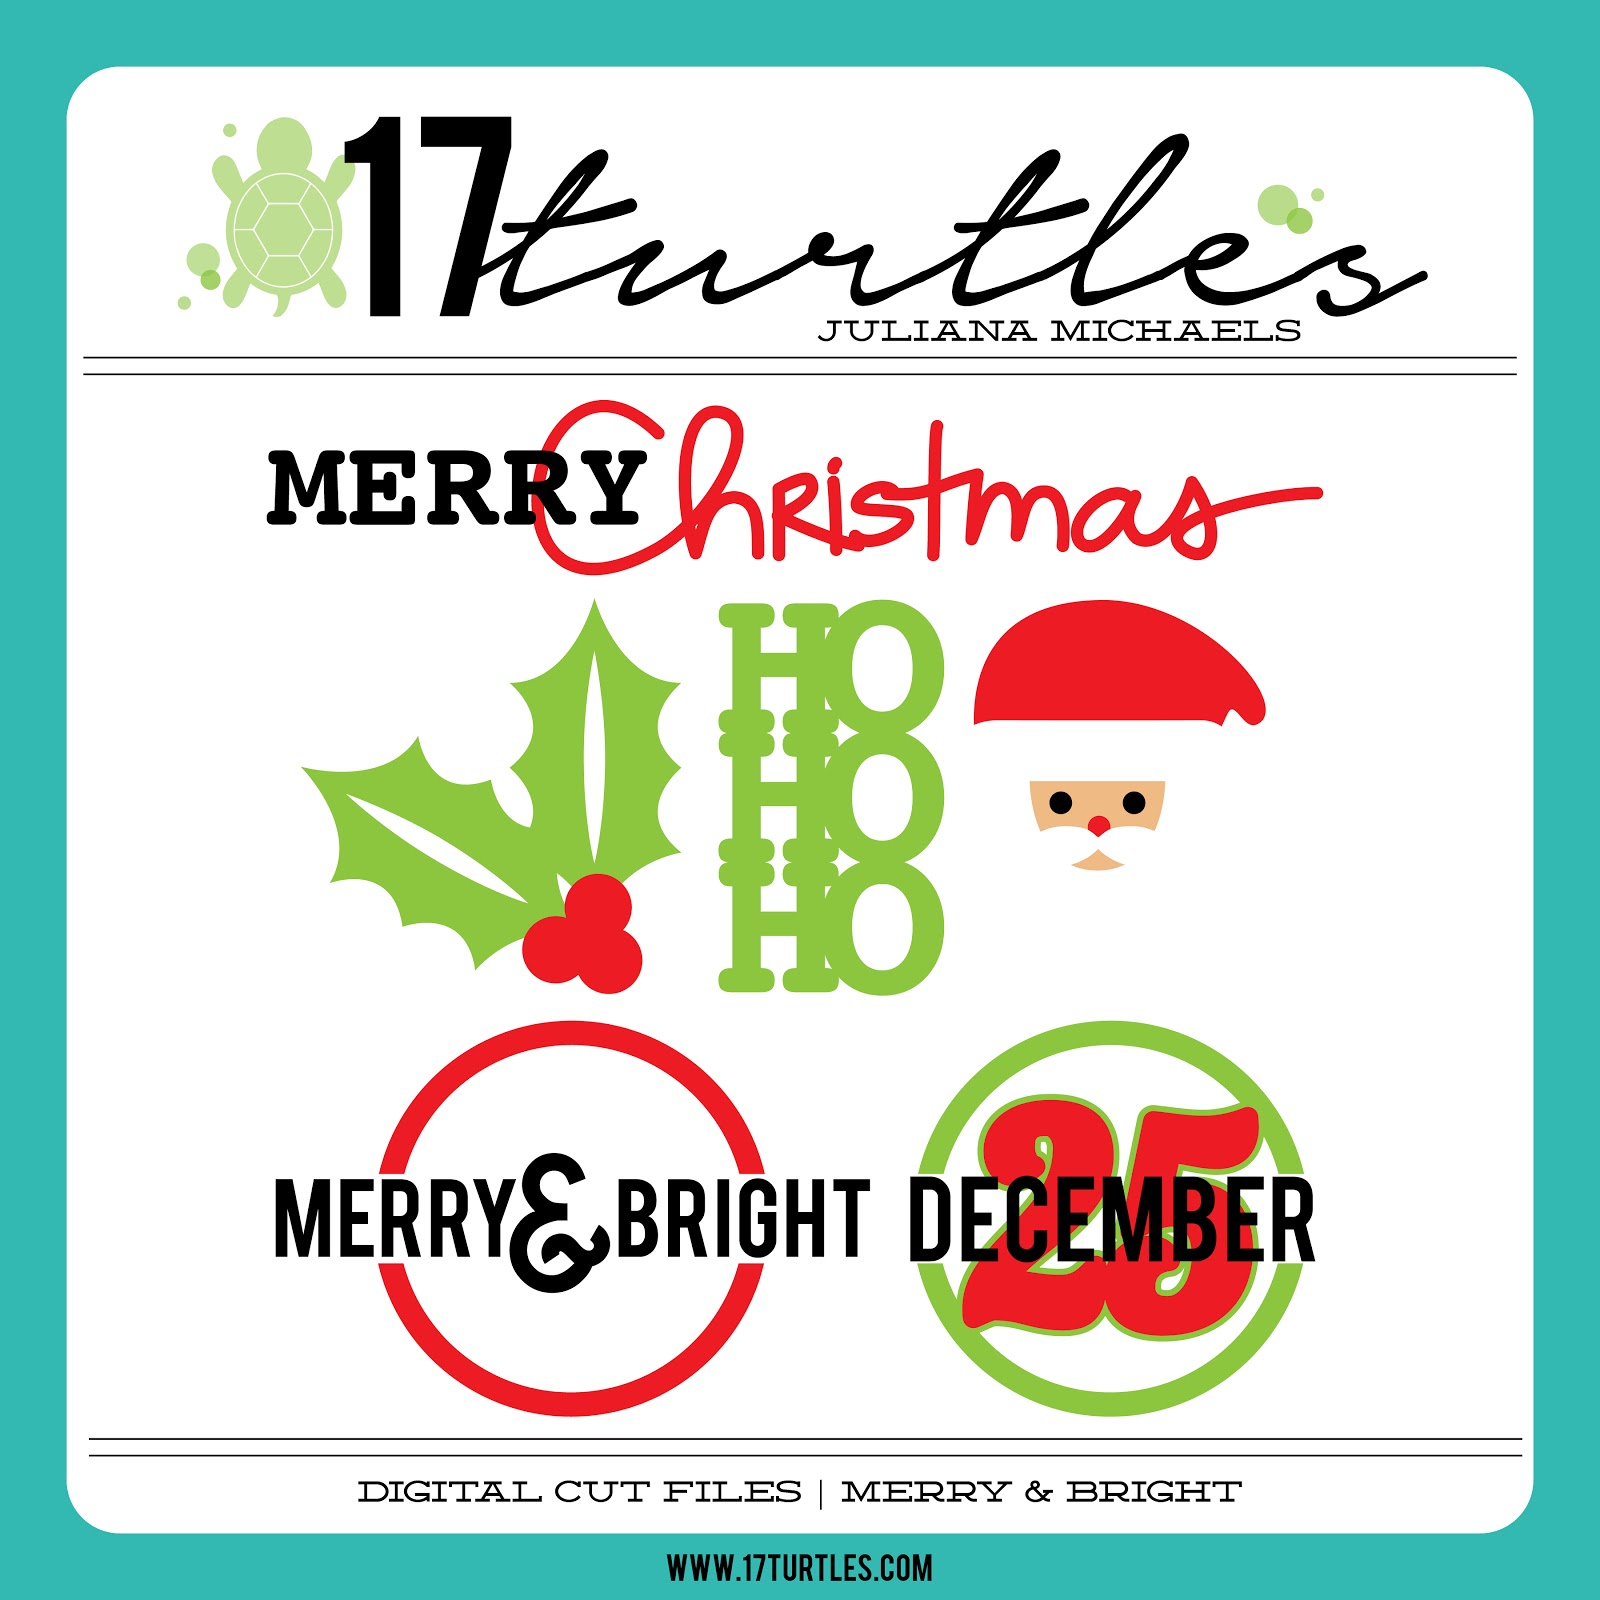 17turtles Digital Cut Files Merry & Bright